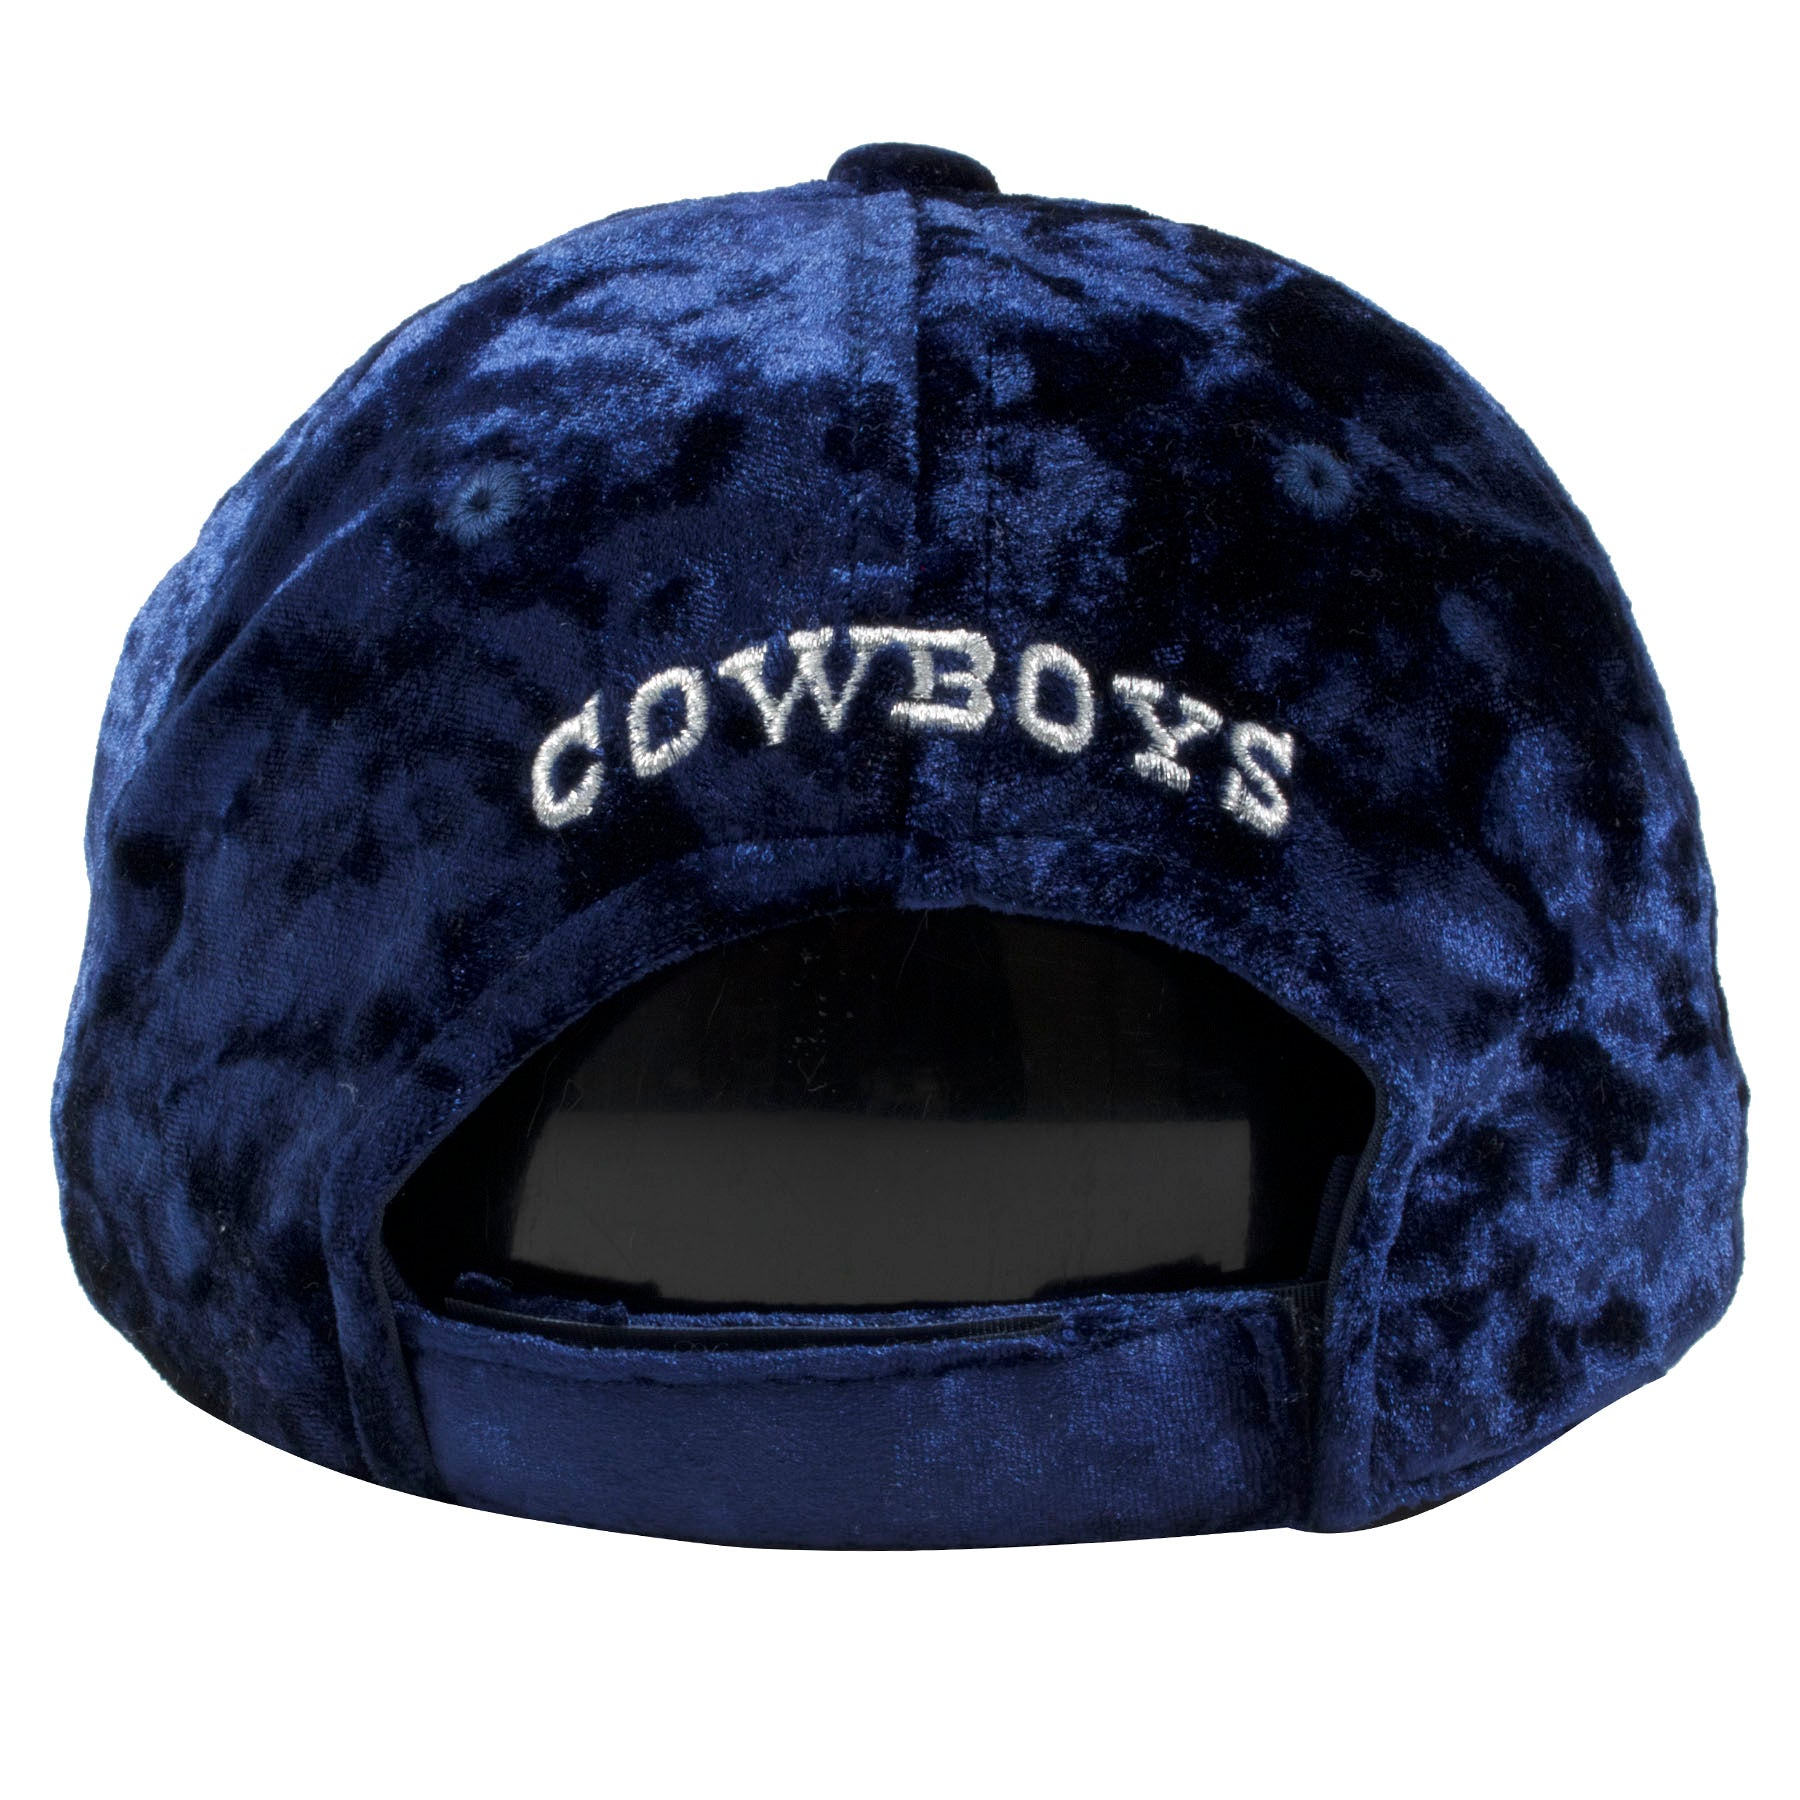 90753ac9960 ... the back of the Dallas Cowboys navy blue velour baseball cap is the word  Cowboys embroidered ...